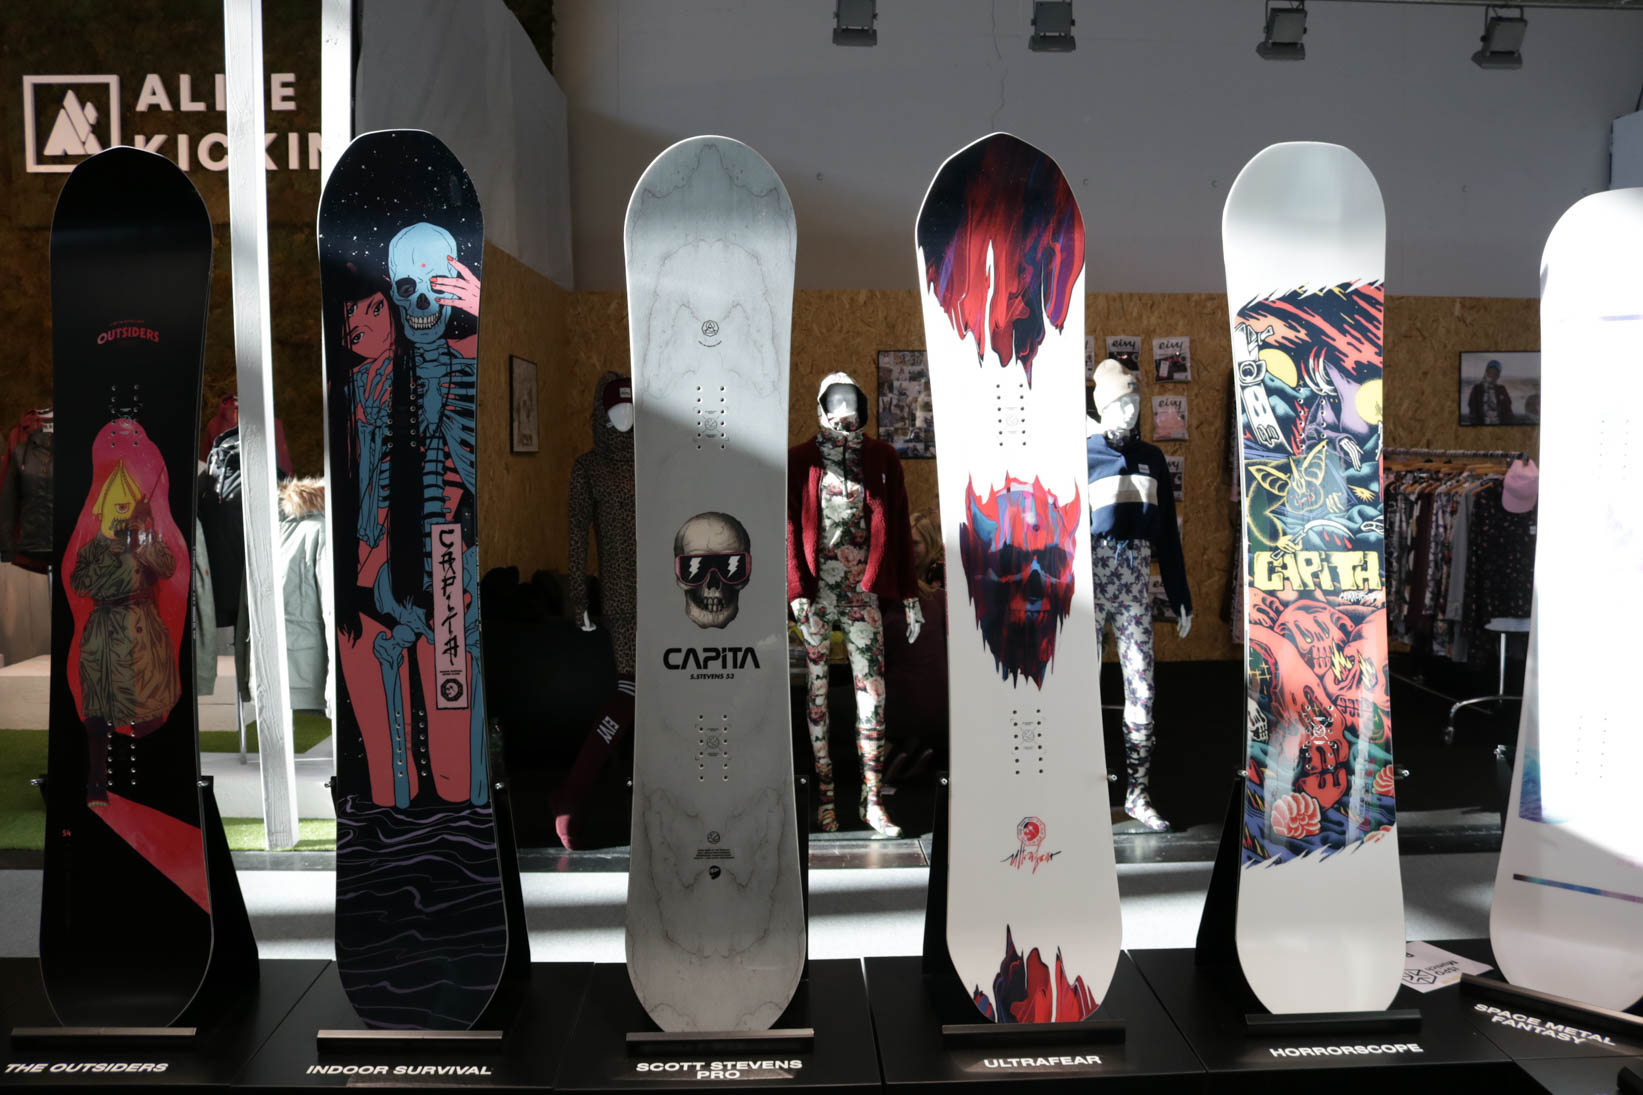 Capita (links nach rechts): The Outsiders 18/19, Indoor Survival 18/19, Scott Stevens Pro 18/19, Ultrafear 18/19, Horrorscope 18/19